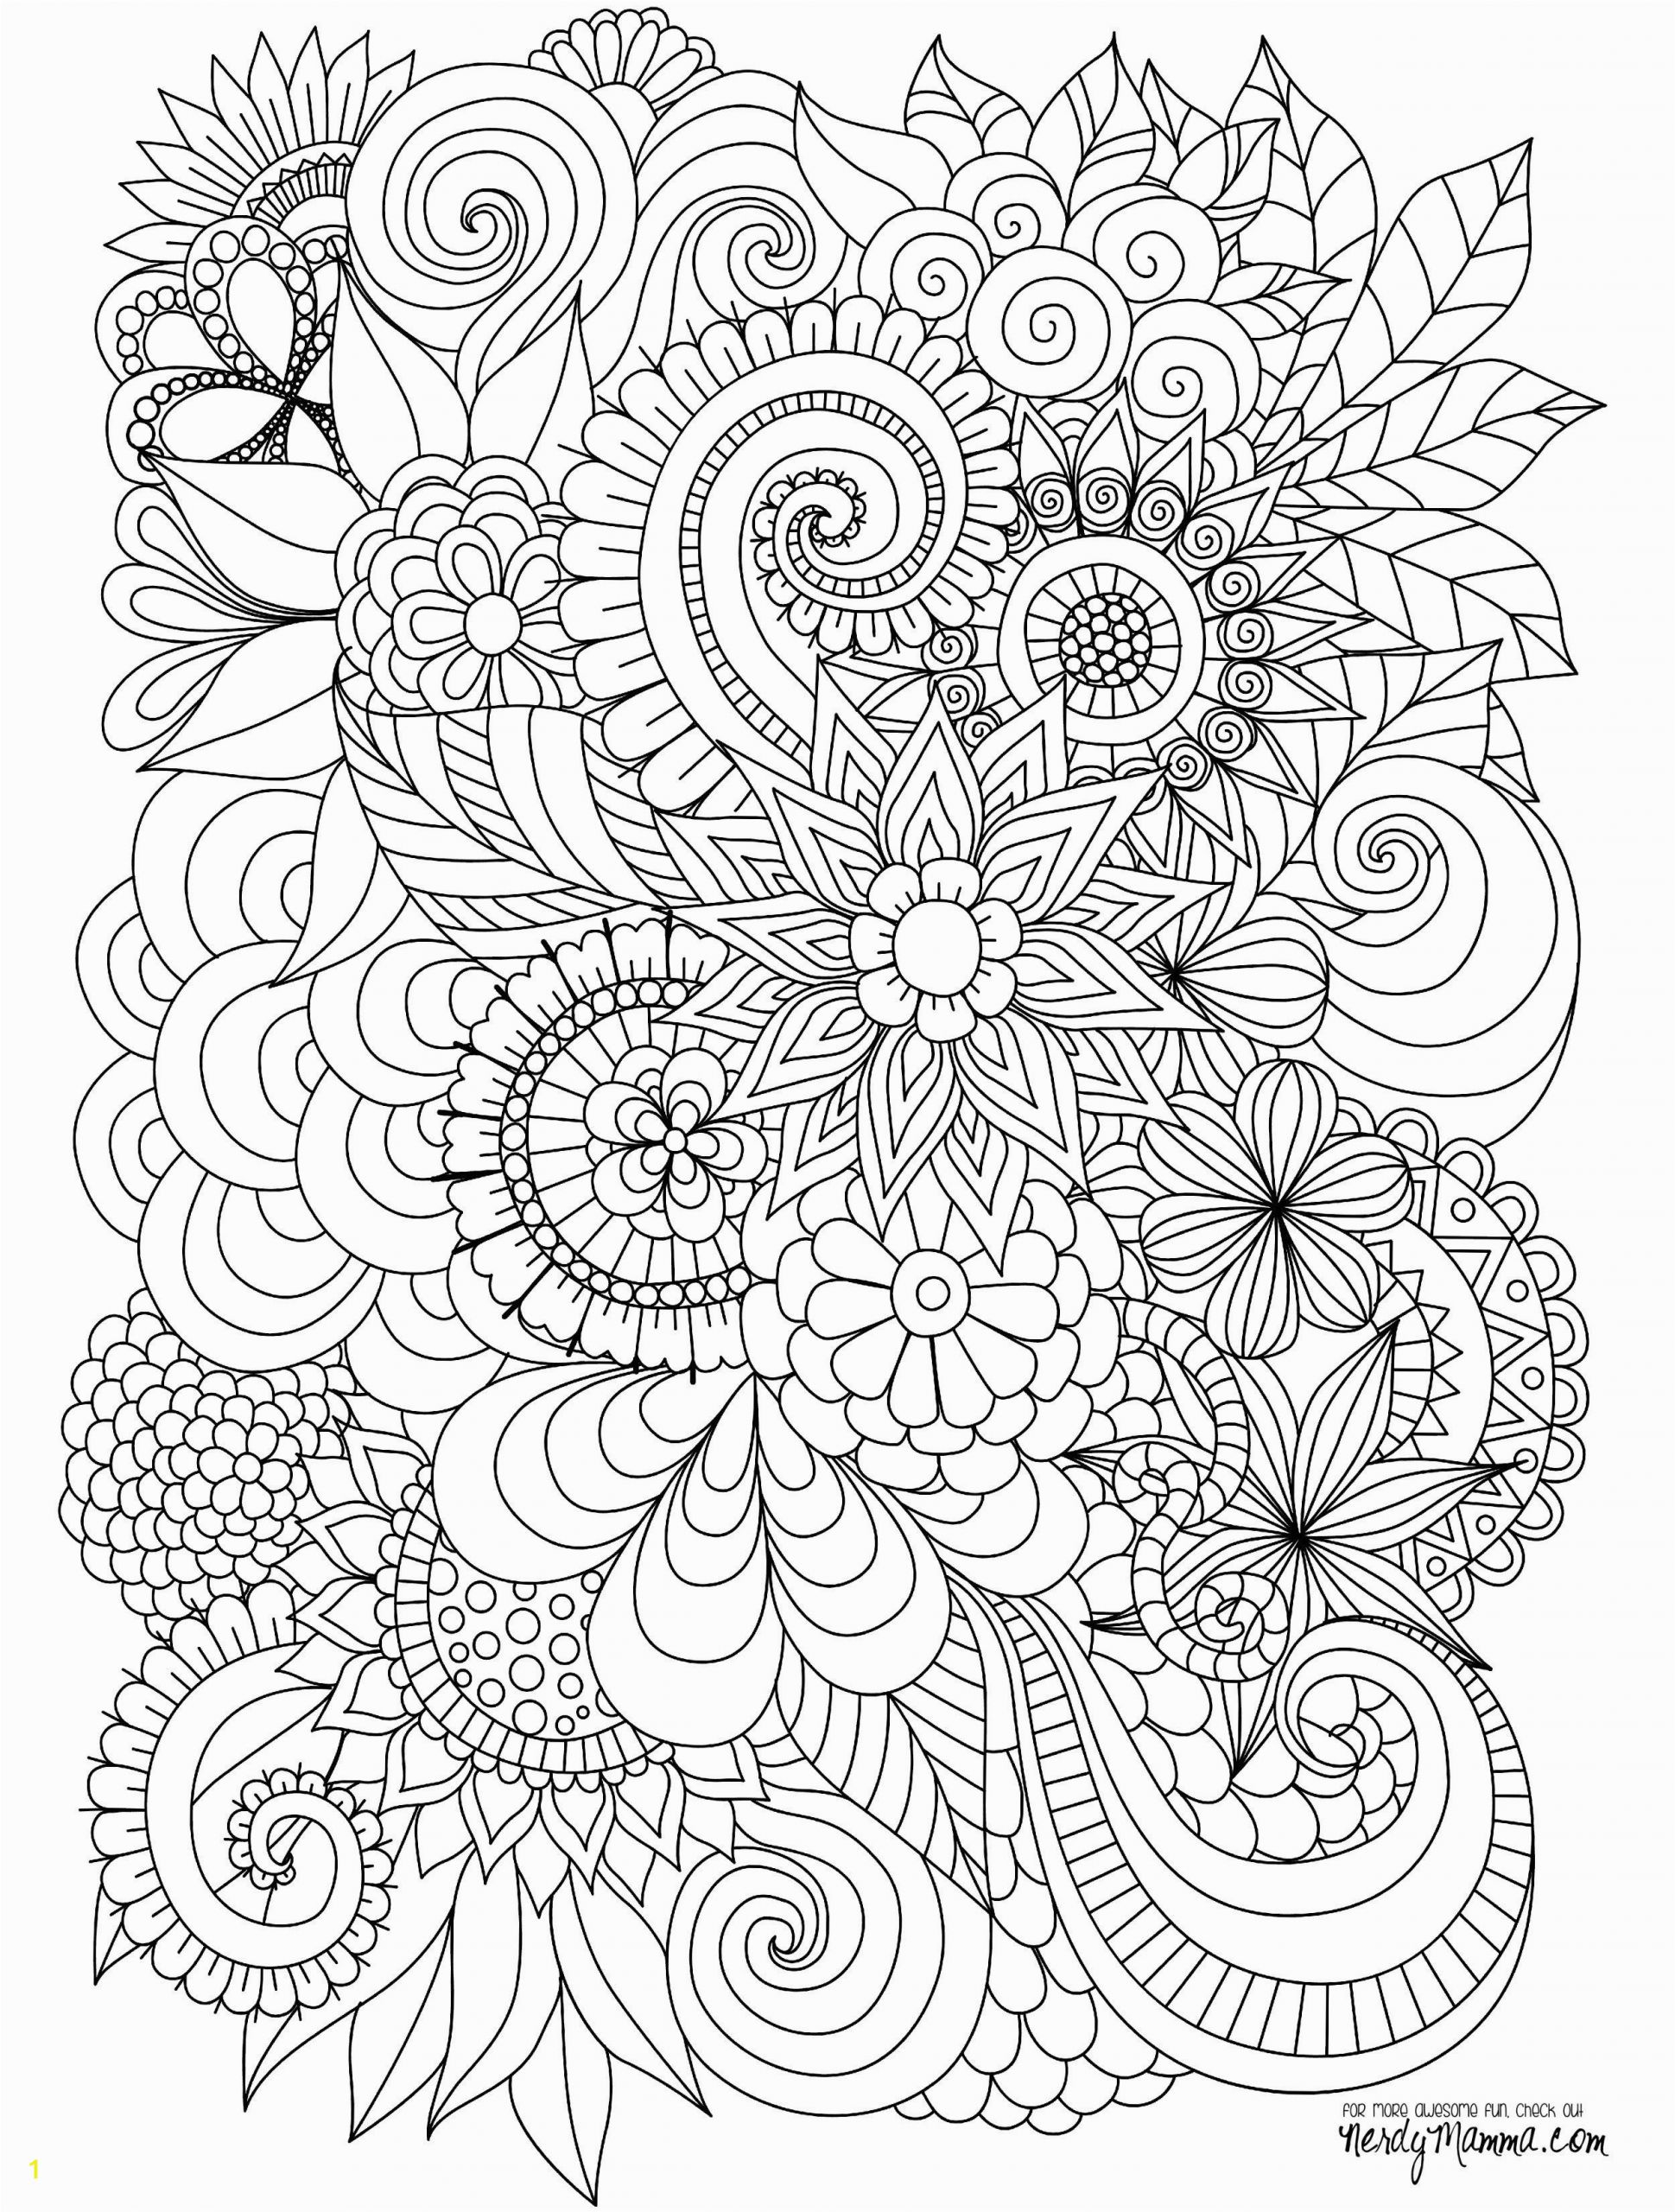 Free Printable Coloring Pages for Adults Advanced 11 Free Printable Adult Coloring Pages